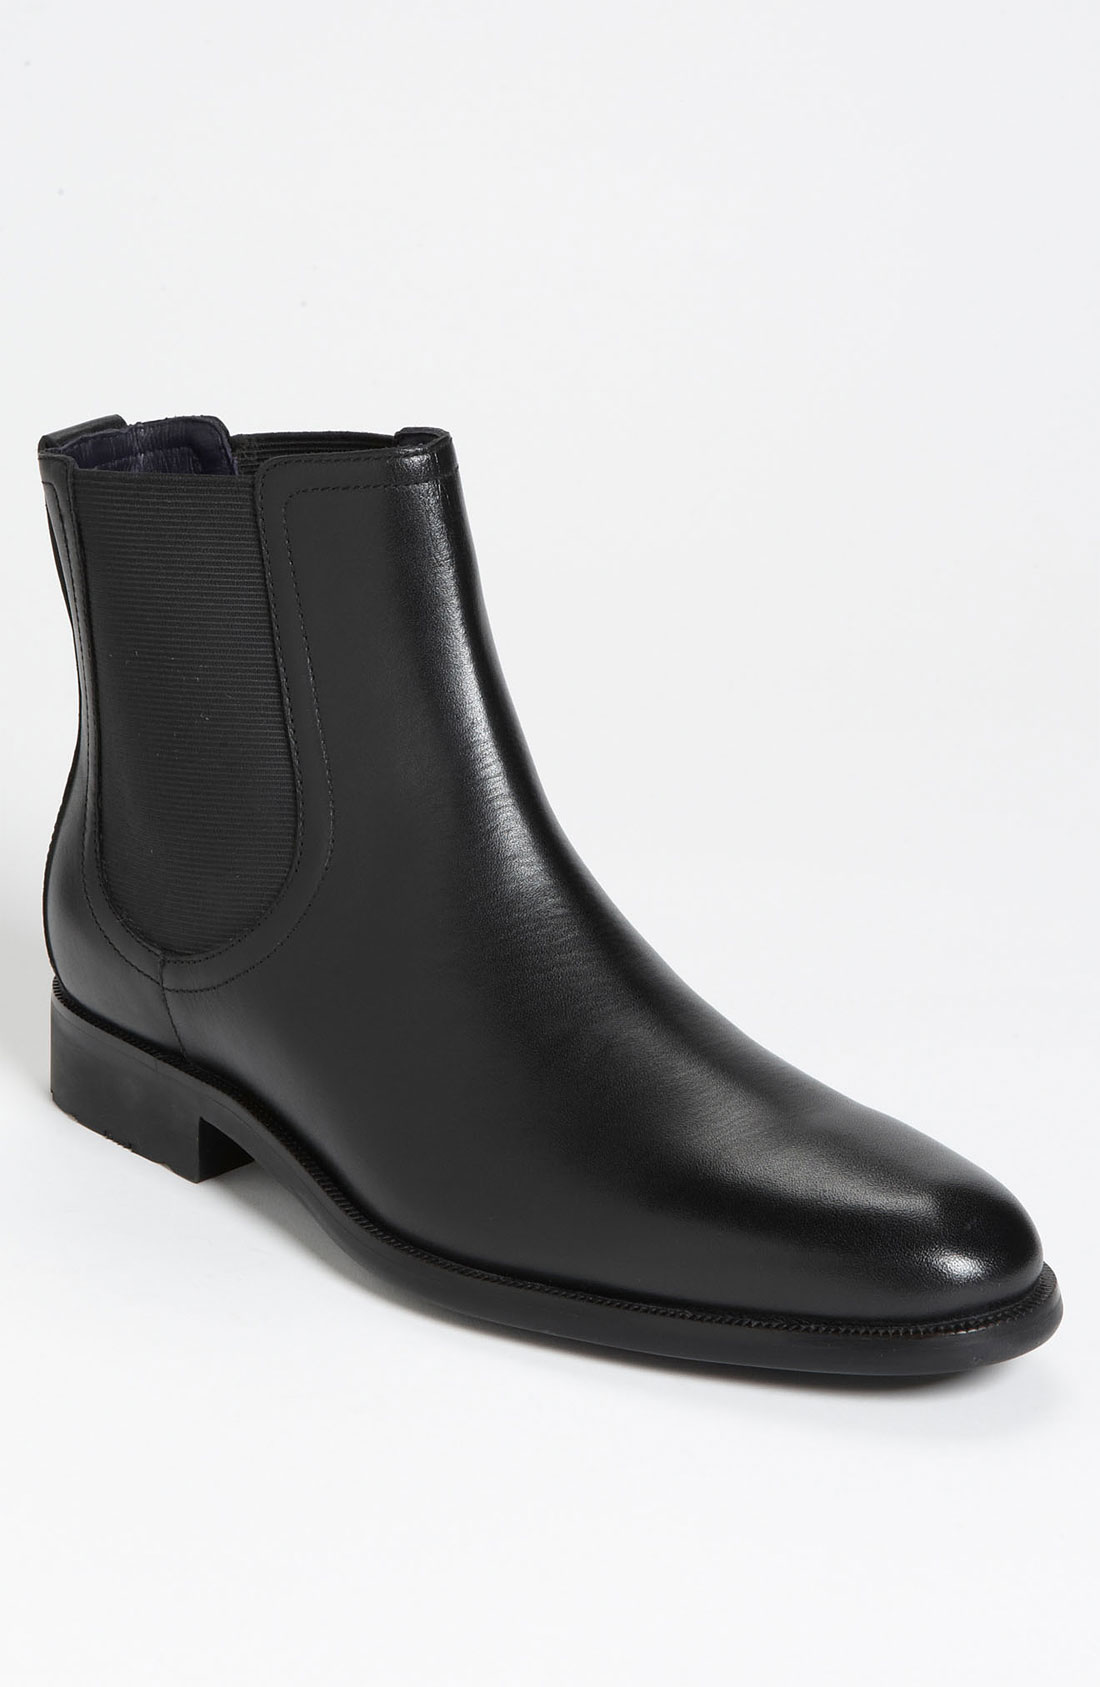 Cole Haan Black Boots Mens Images Decorating Ideas Stylish Interior